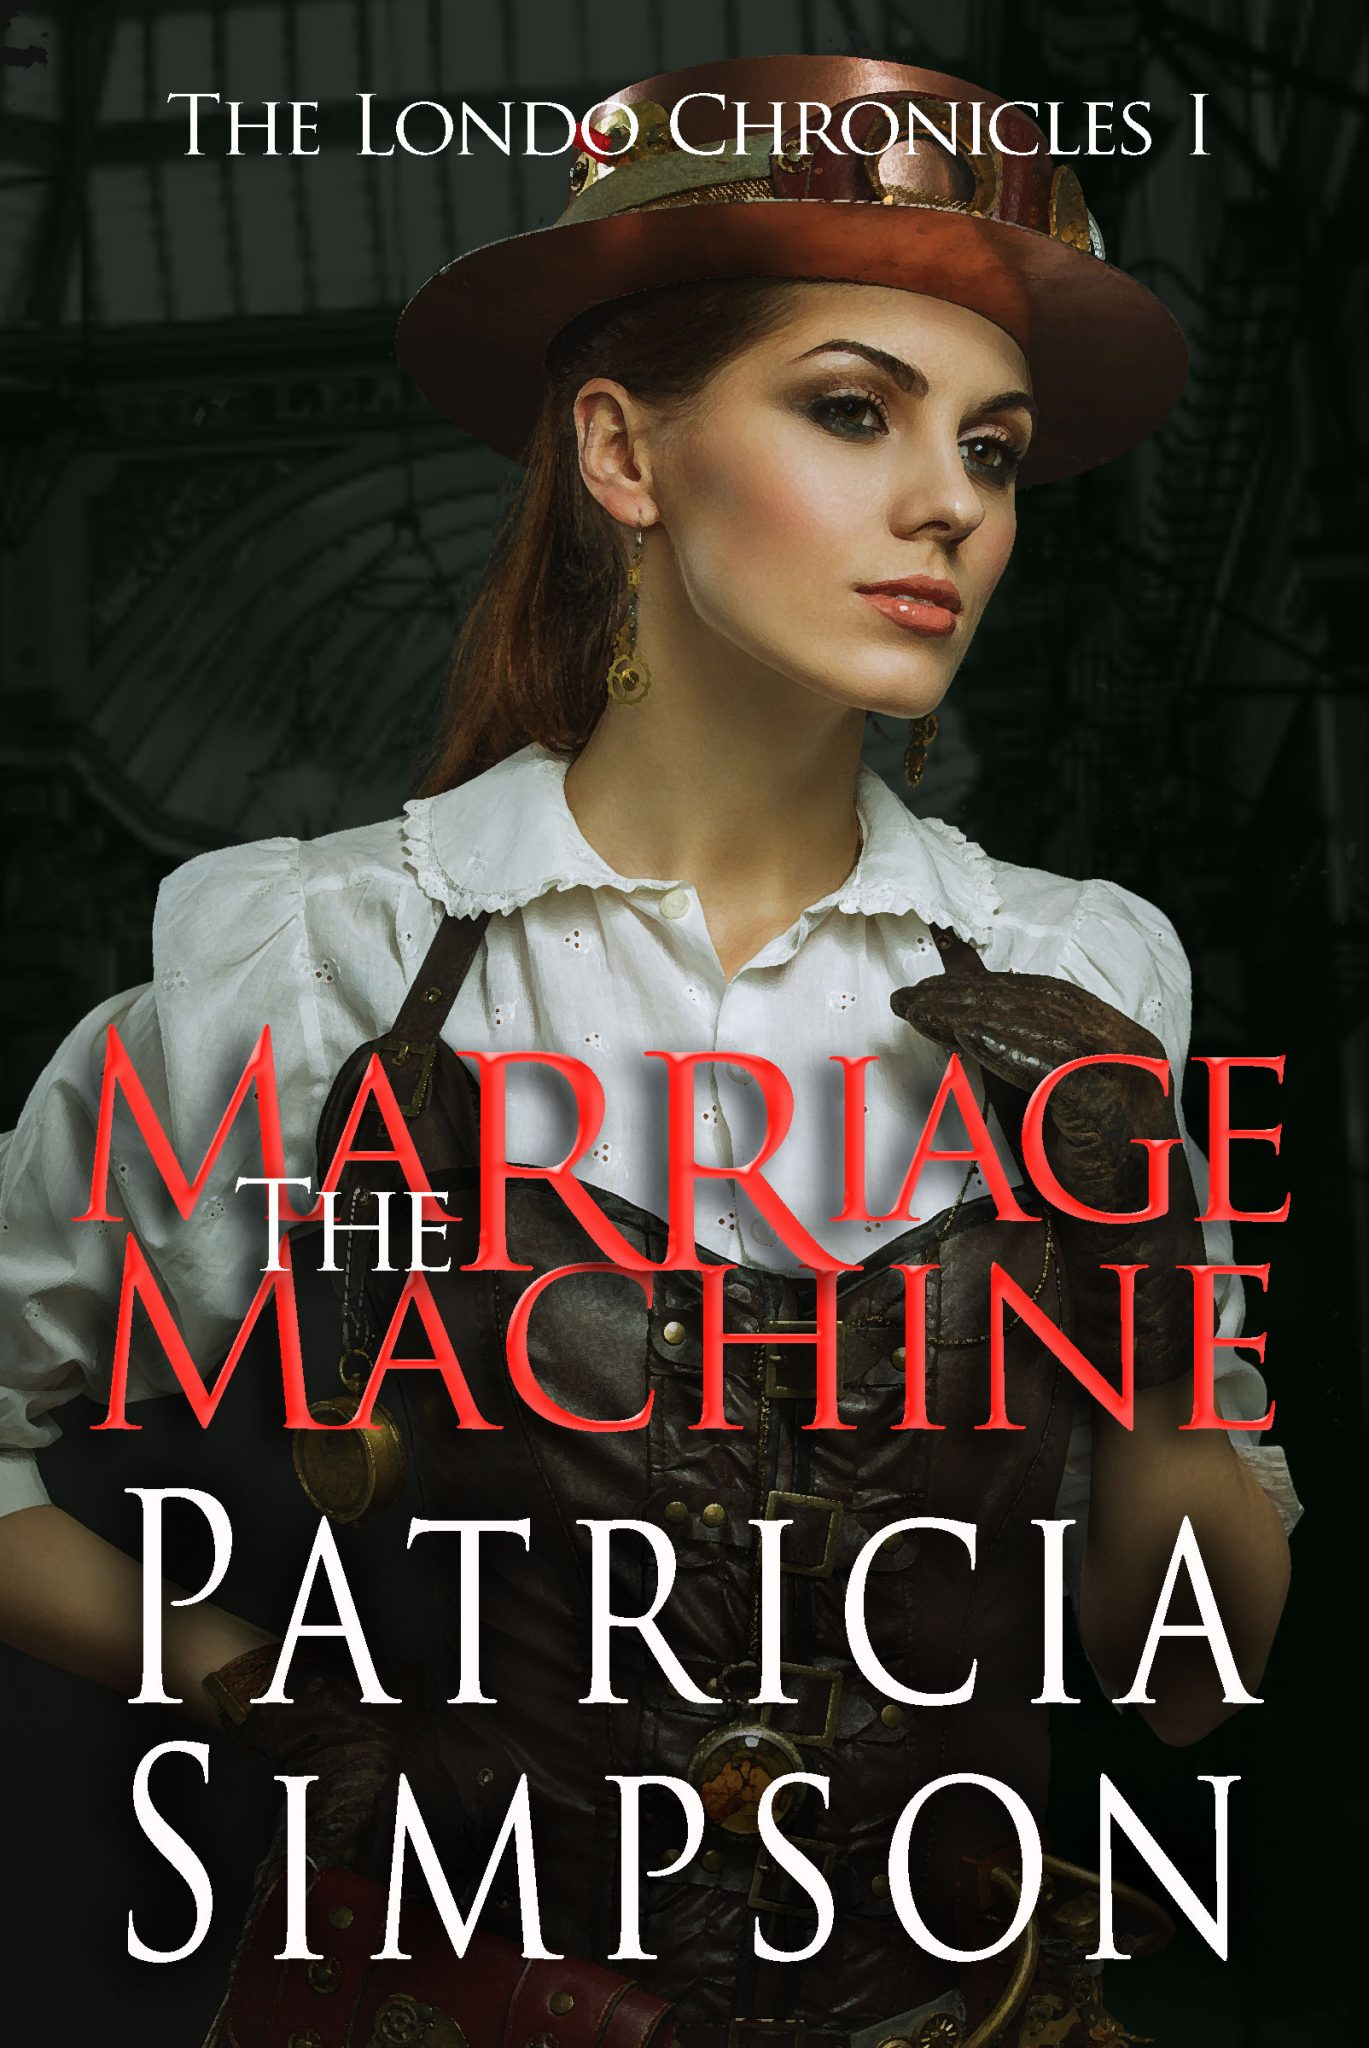 Marriage Machine